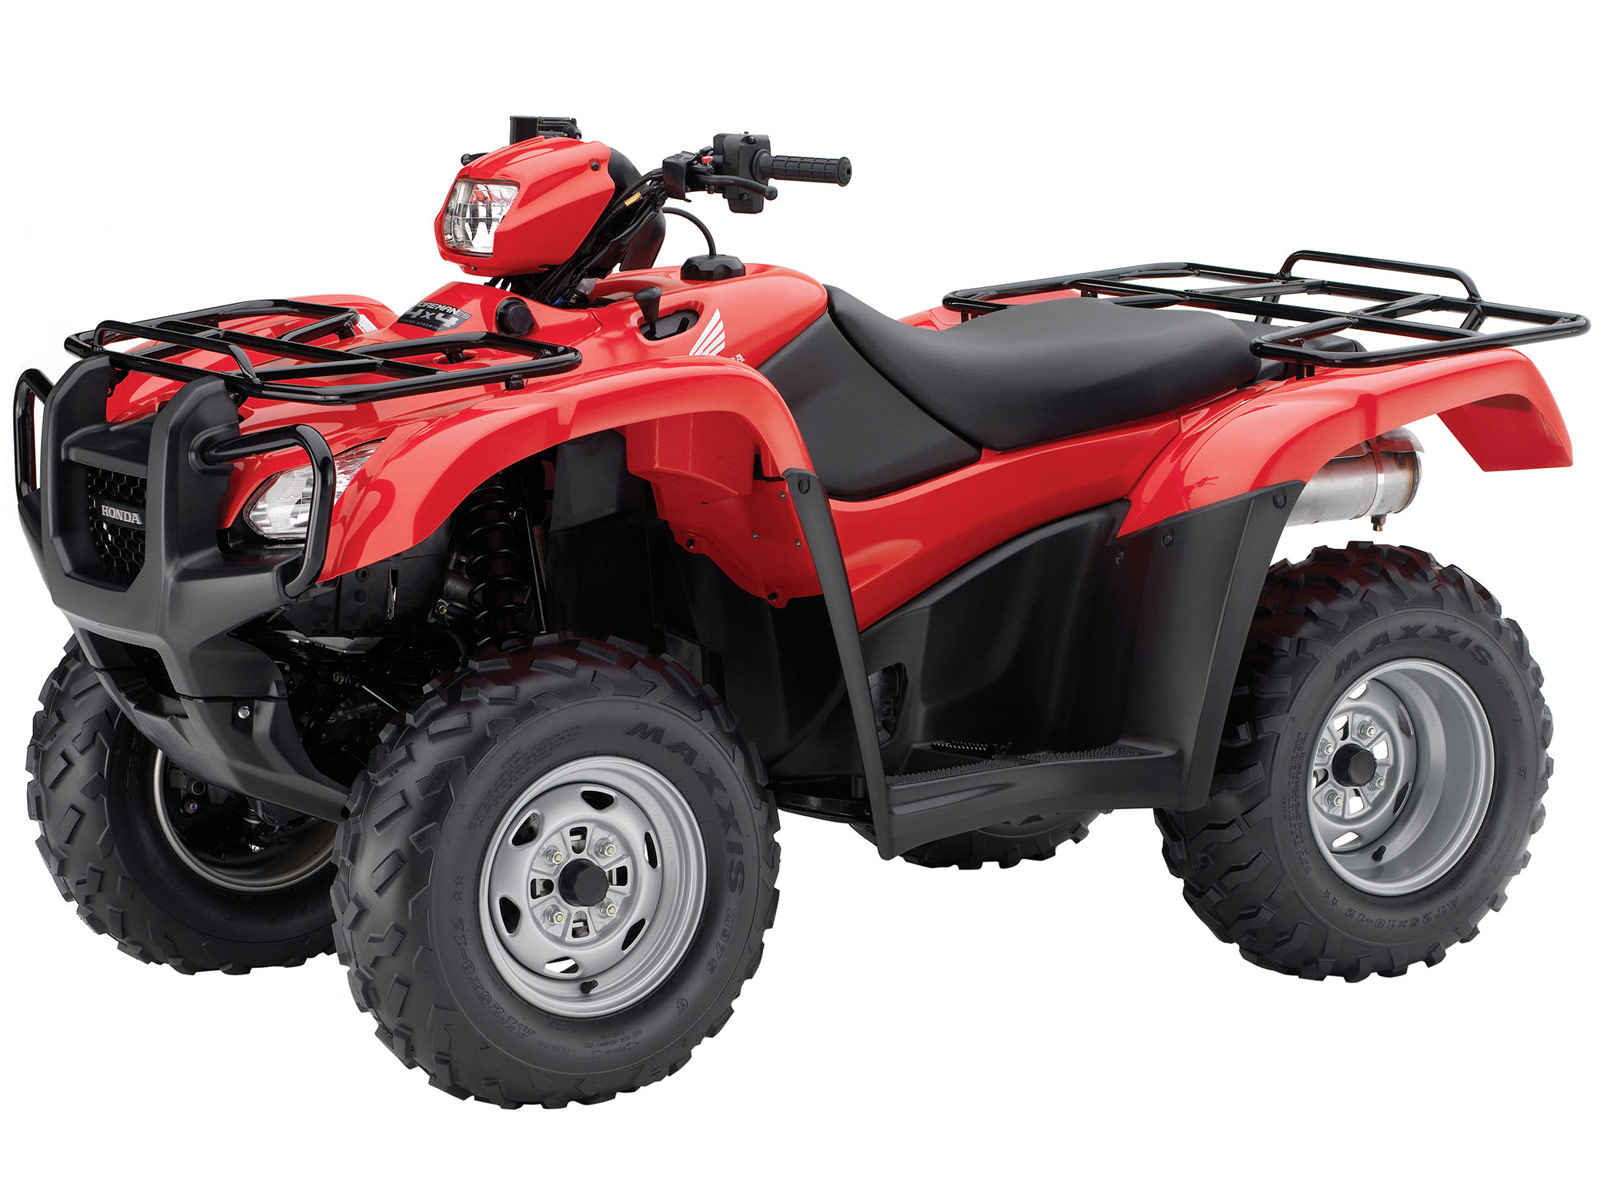 2013 honda fourtrax foreman 4x4 es with electric power steering trx500fpe. Black Bedroom Furniture Sets. Home Design Ideas